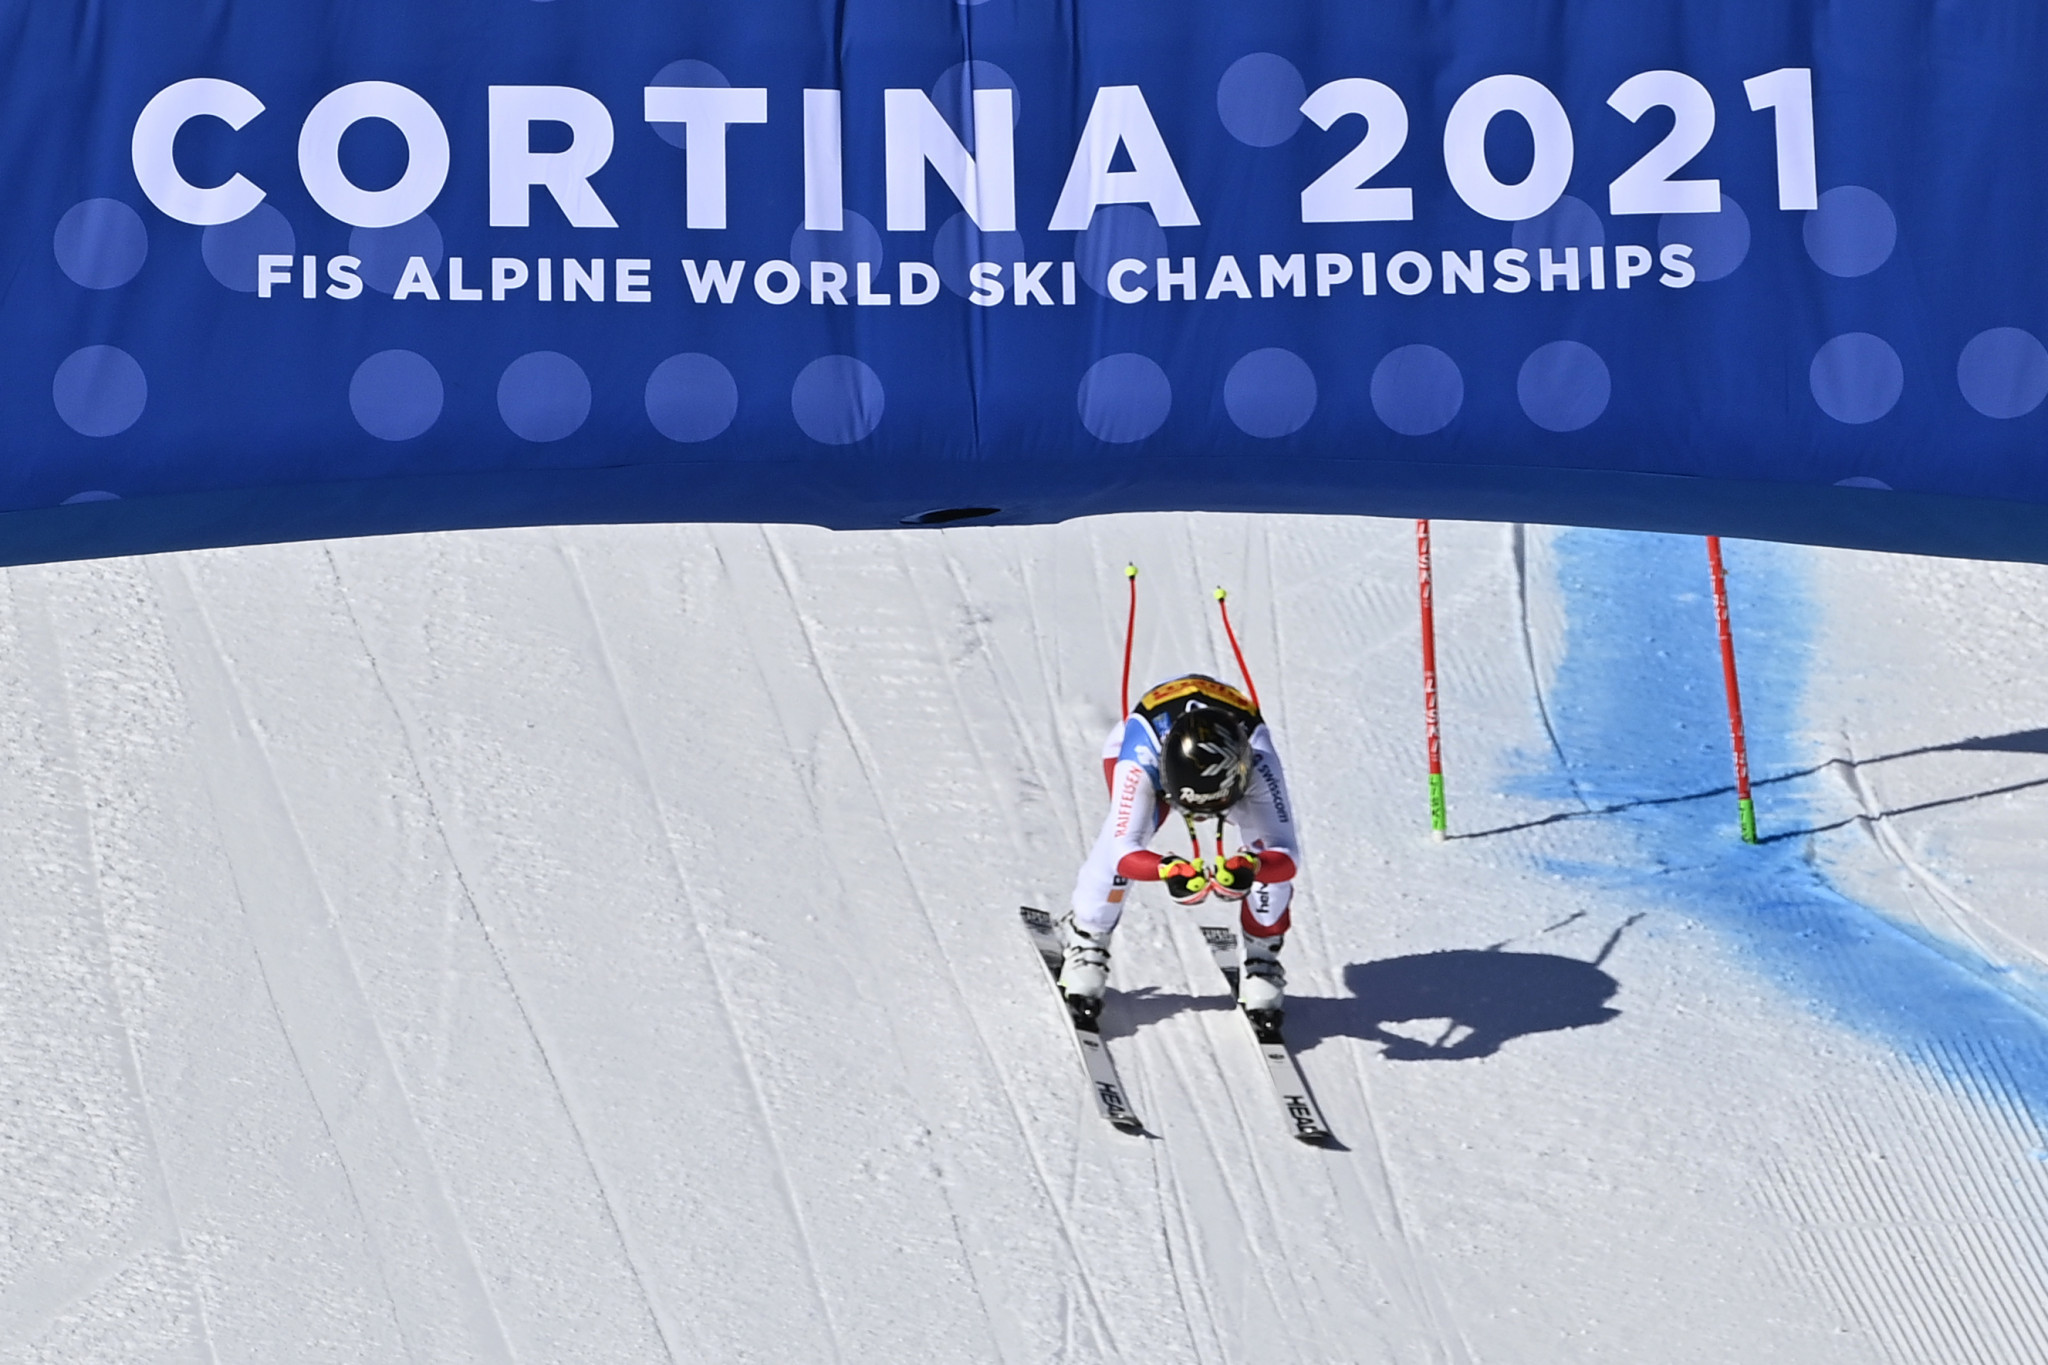 Favourite Gut-Behrami wins women's super-G as action begins at FIS Alpine World Ski Championships